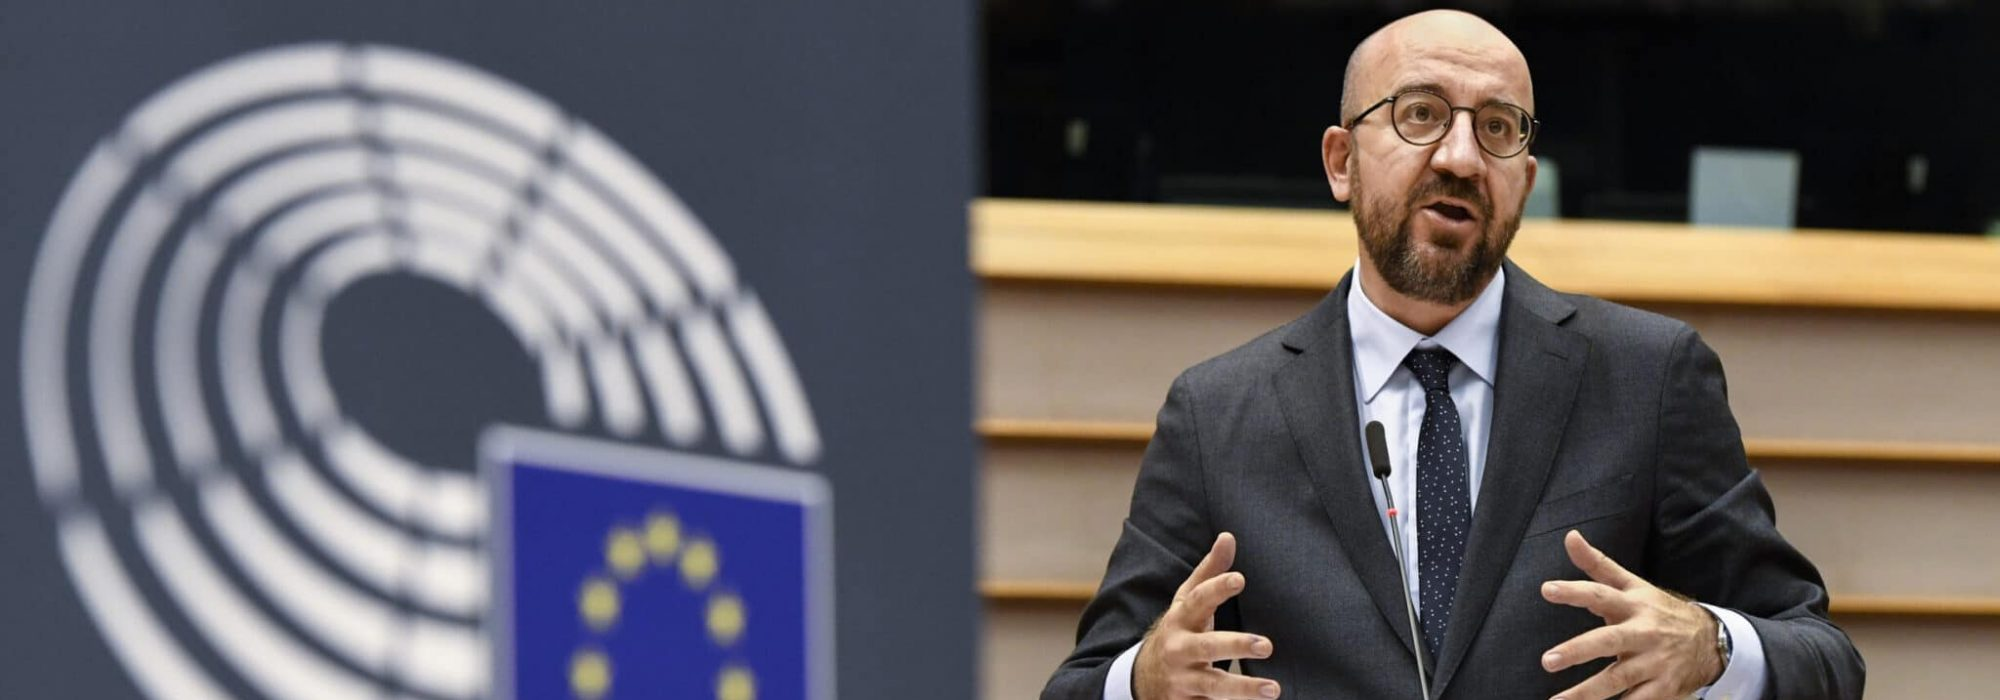 EP plenary session - Conclusions of the European Council meeting of 15 and 16 October 2020, in particular the negotiations of the future relations with the UK